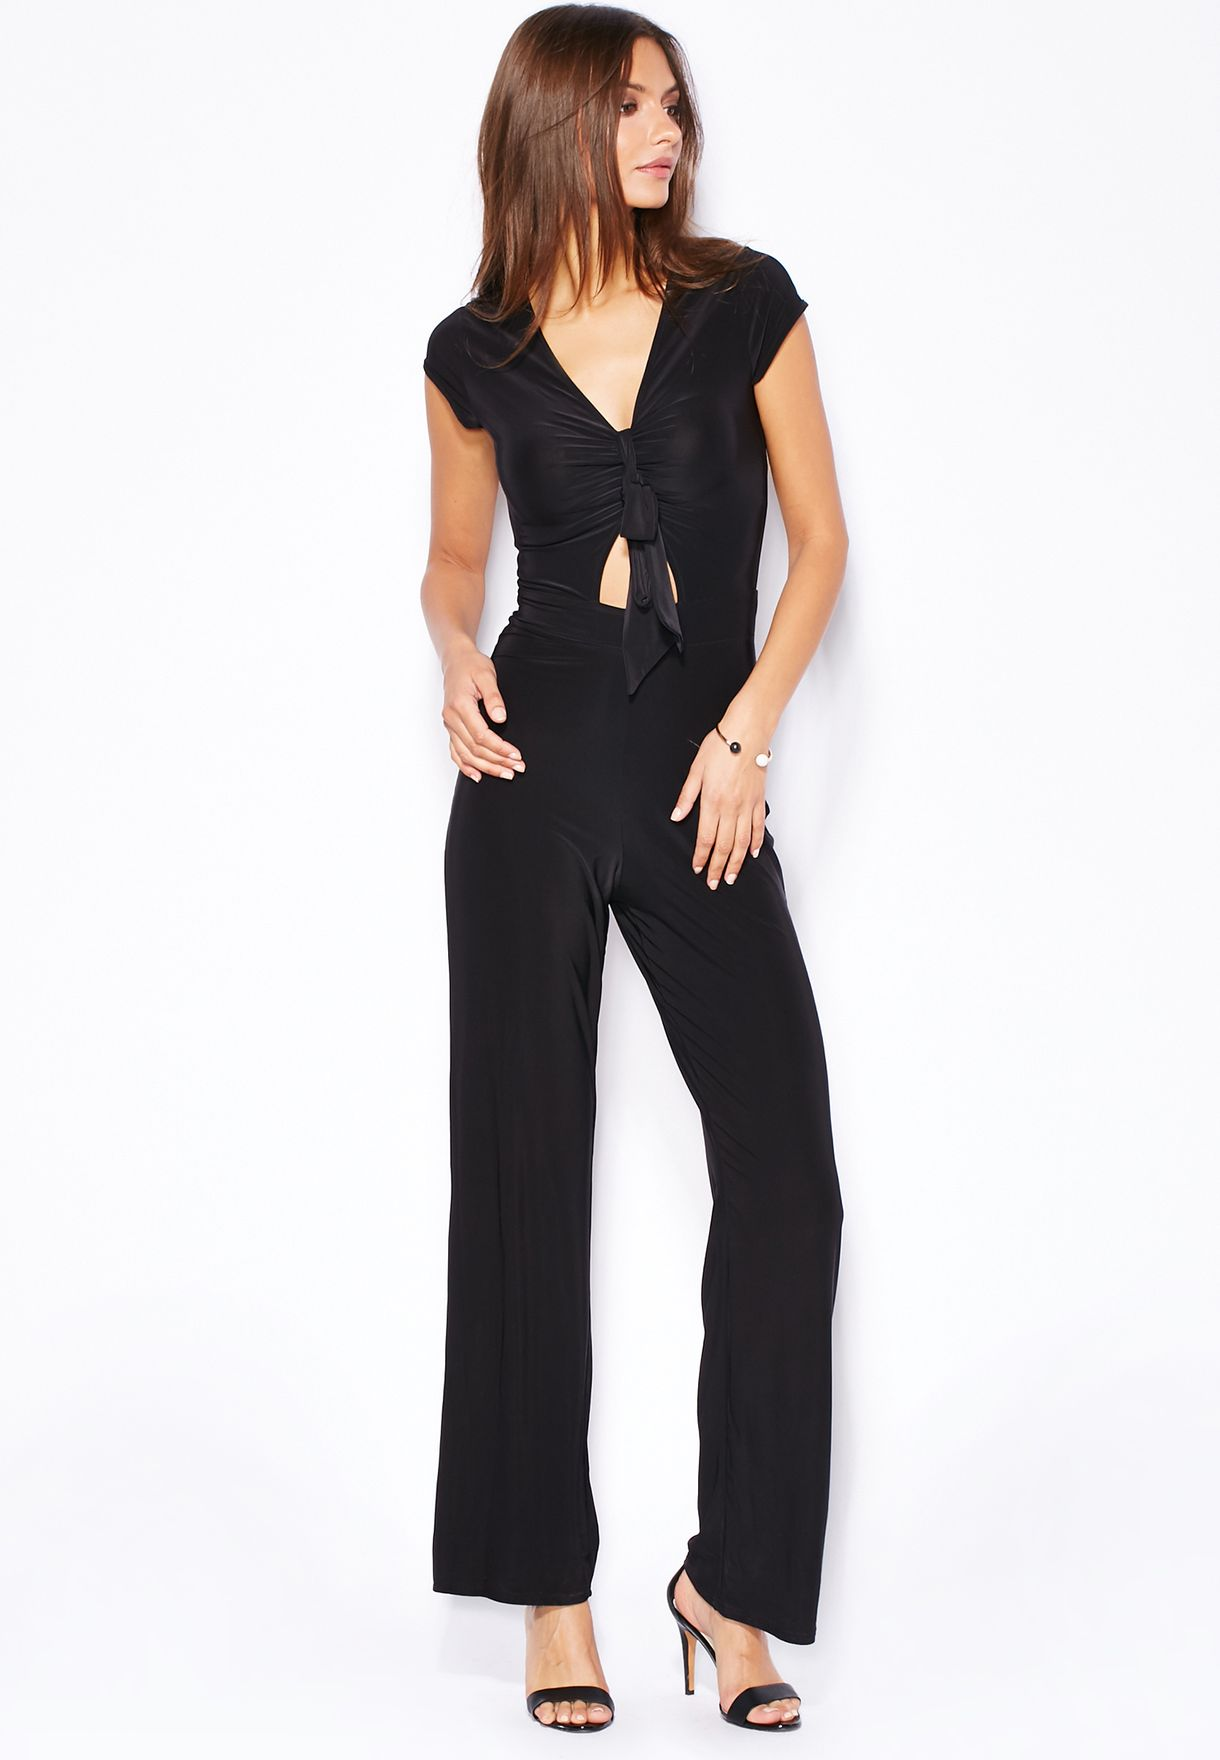 e6b3db0d84 Shop Boohoo black Tie Front Jumpsuit for Women in Kuwait - BO797AT86PYR